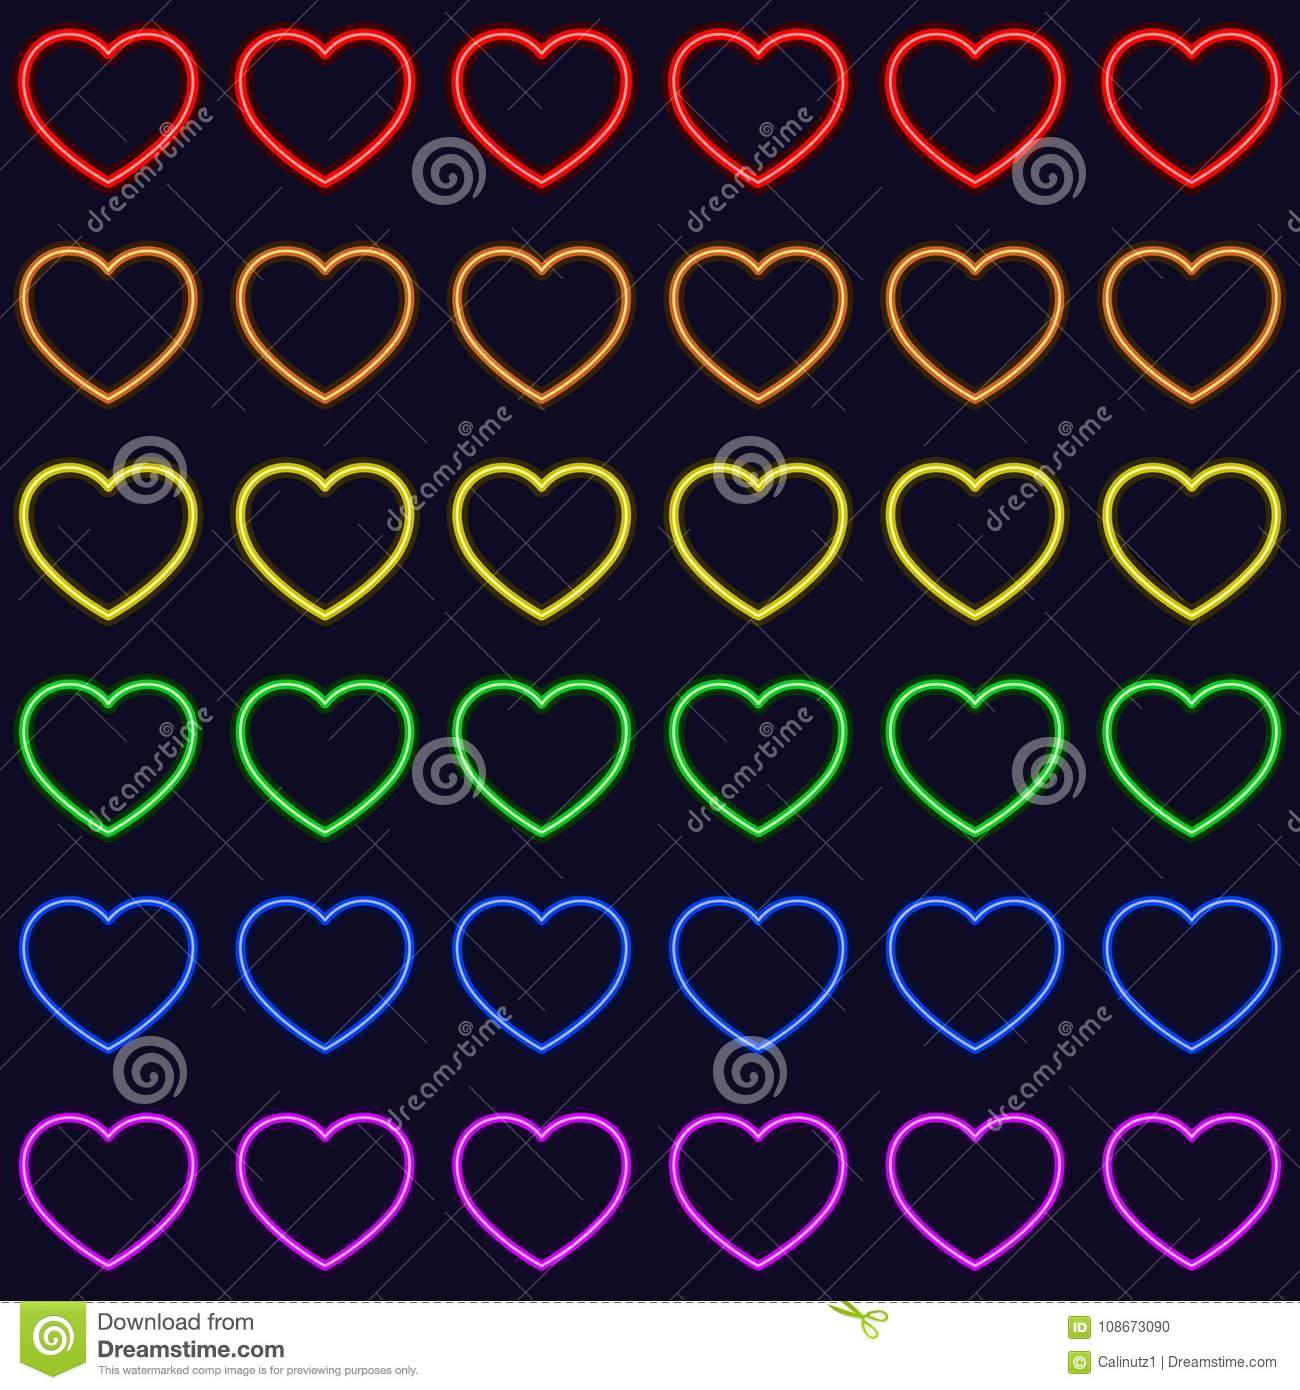 Colorful Rainbow Hearts Seamless Repetitive Vector Pattern Texture Background Stock Vector Illustration Of Card Texture 108673090